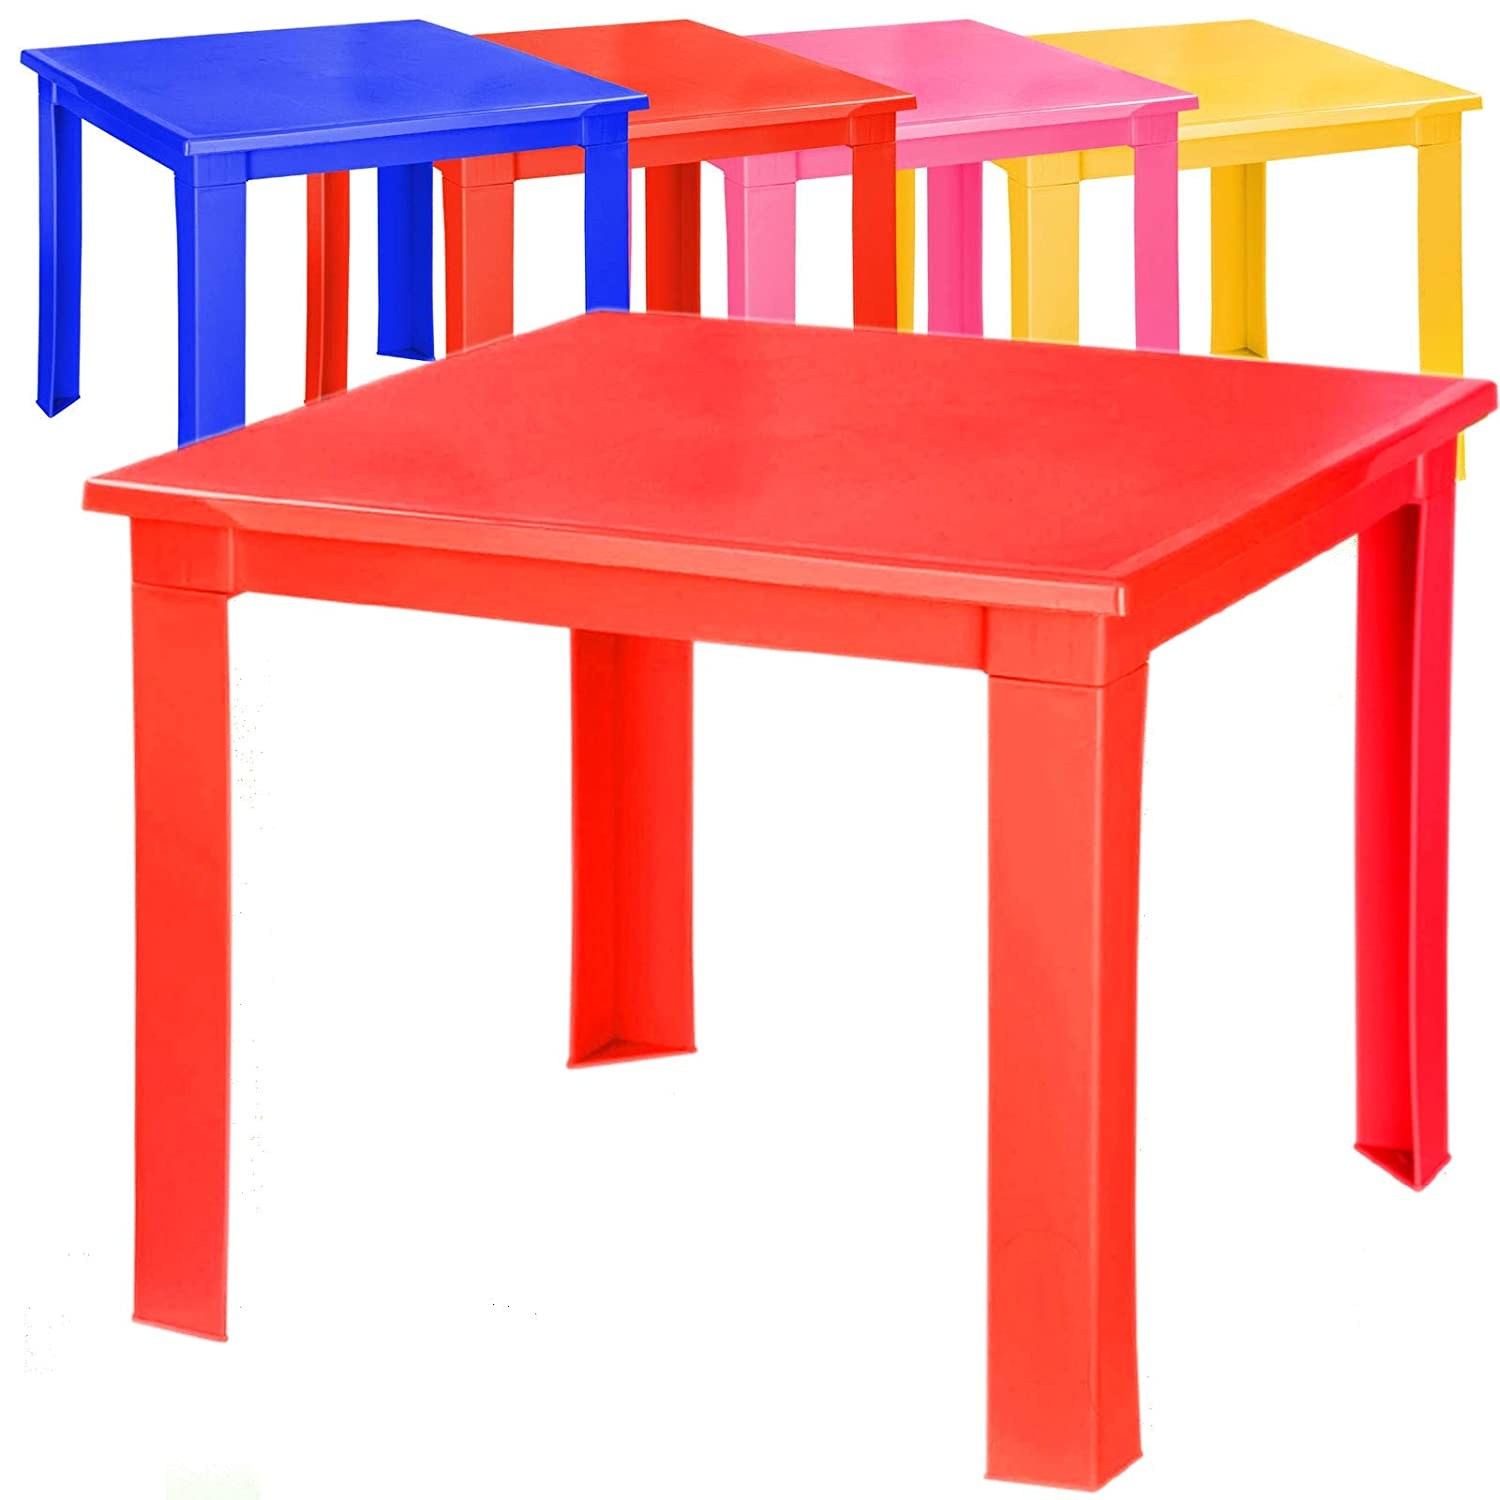 Kids Children Plastic Table Strong Folding Table High Quality Suitable for Outdoor Side Table (Blue) A406